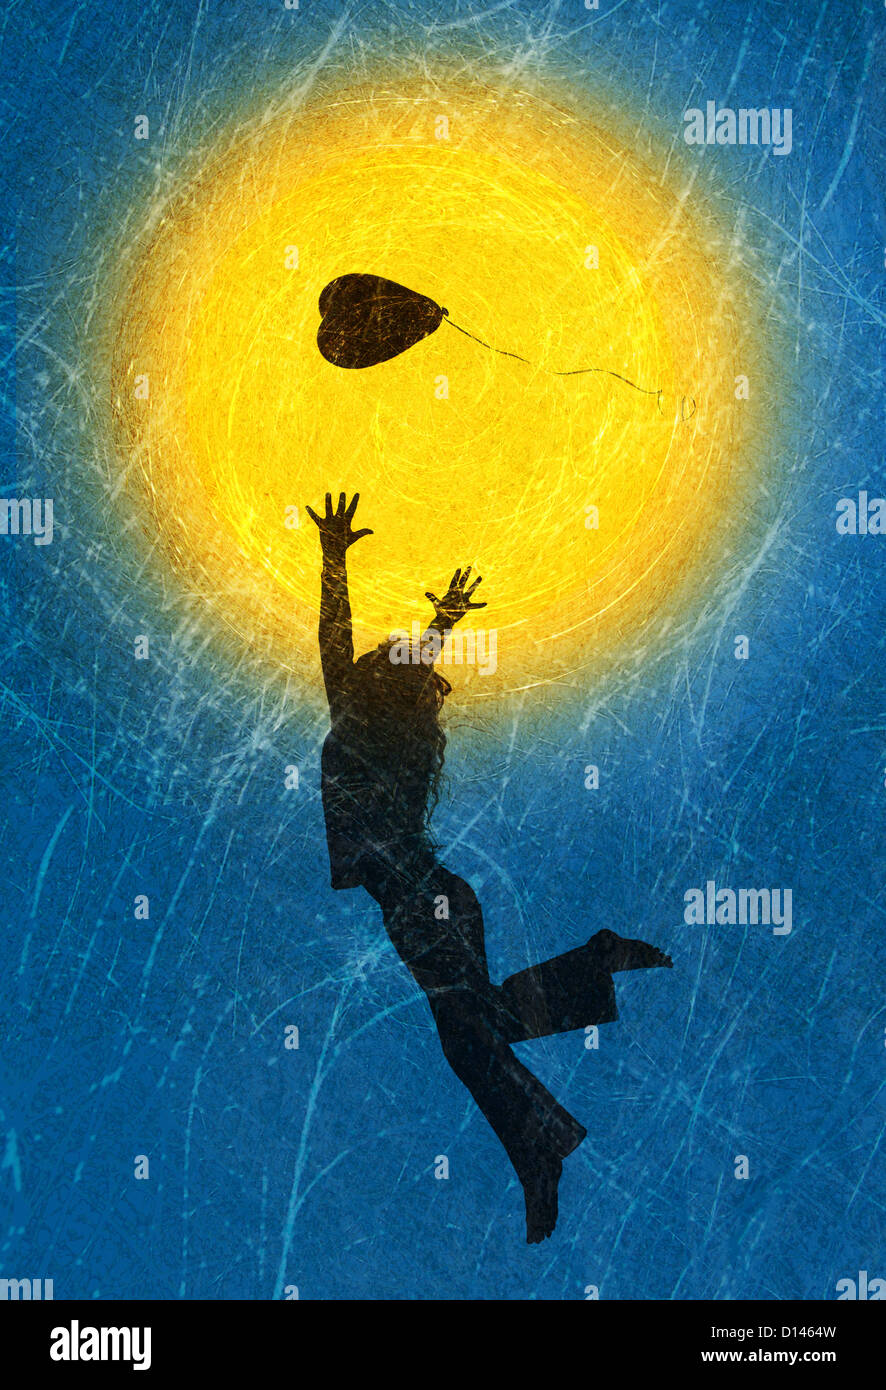 Silhouette of a young girl playing with a heart shape balloon against a textured sun and sky - Stock Image